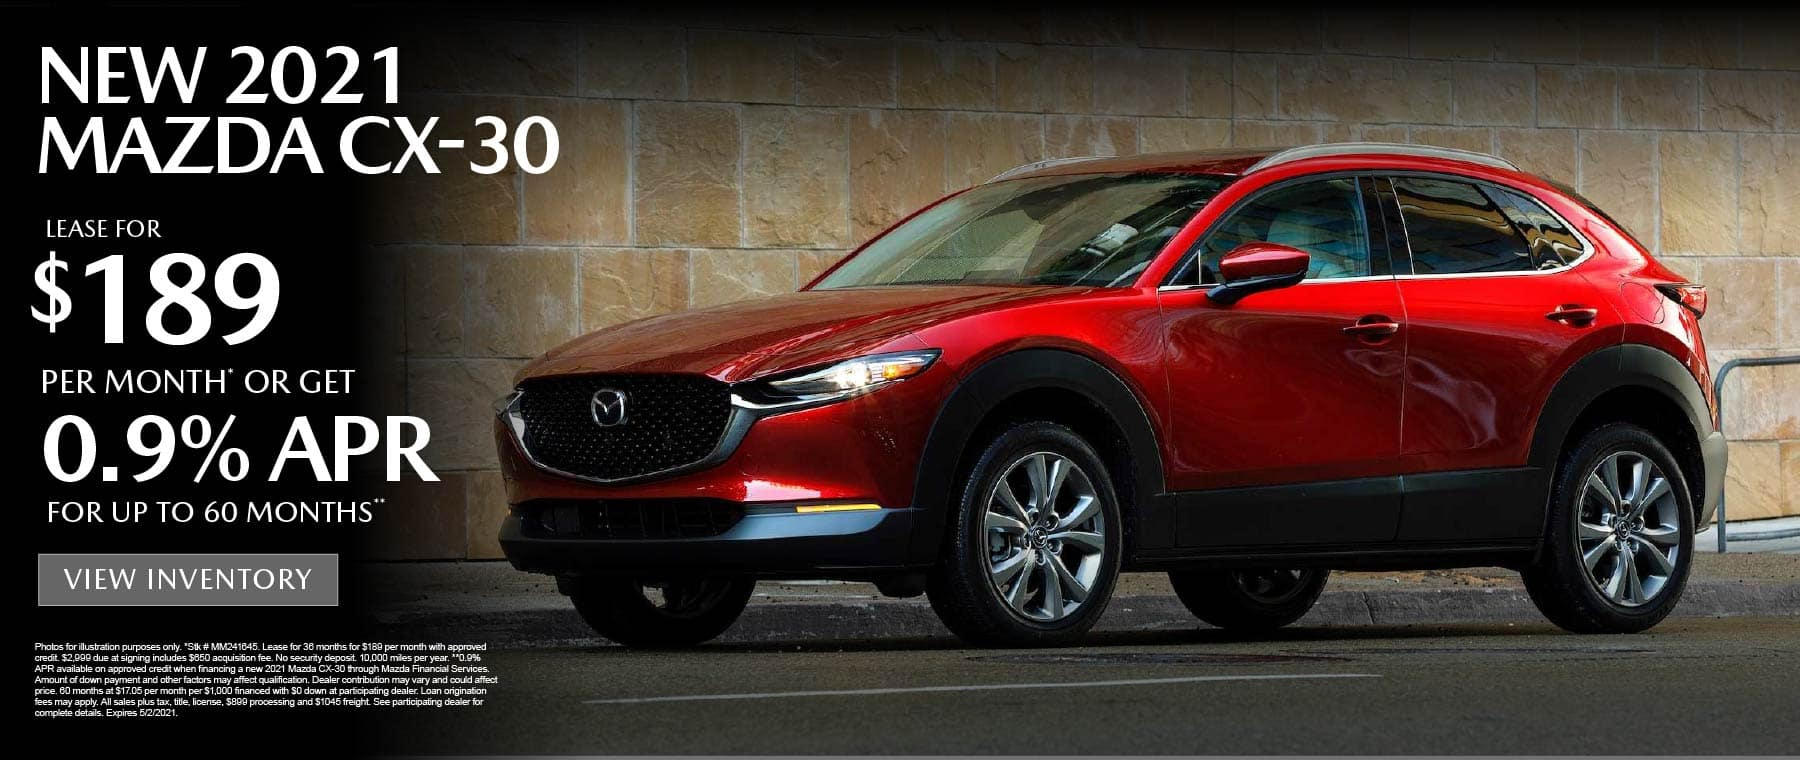 NEW 2021 MAZDA CX-30 – Lease for $189 a month* or get 0.9% APR for up to 60 months** View inventory.